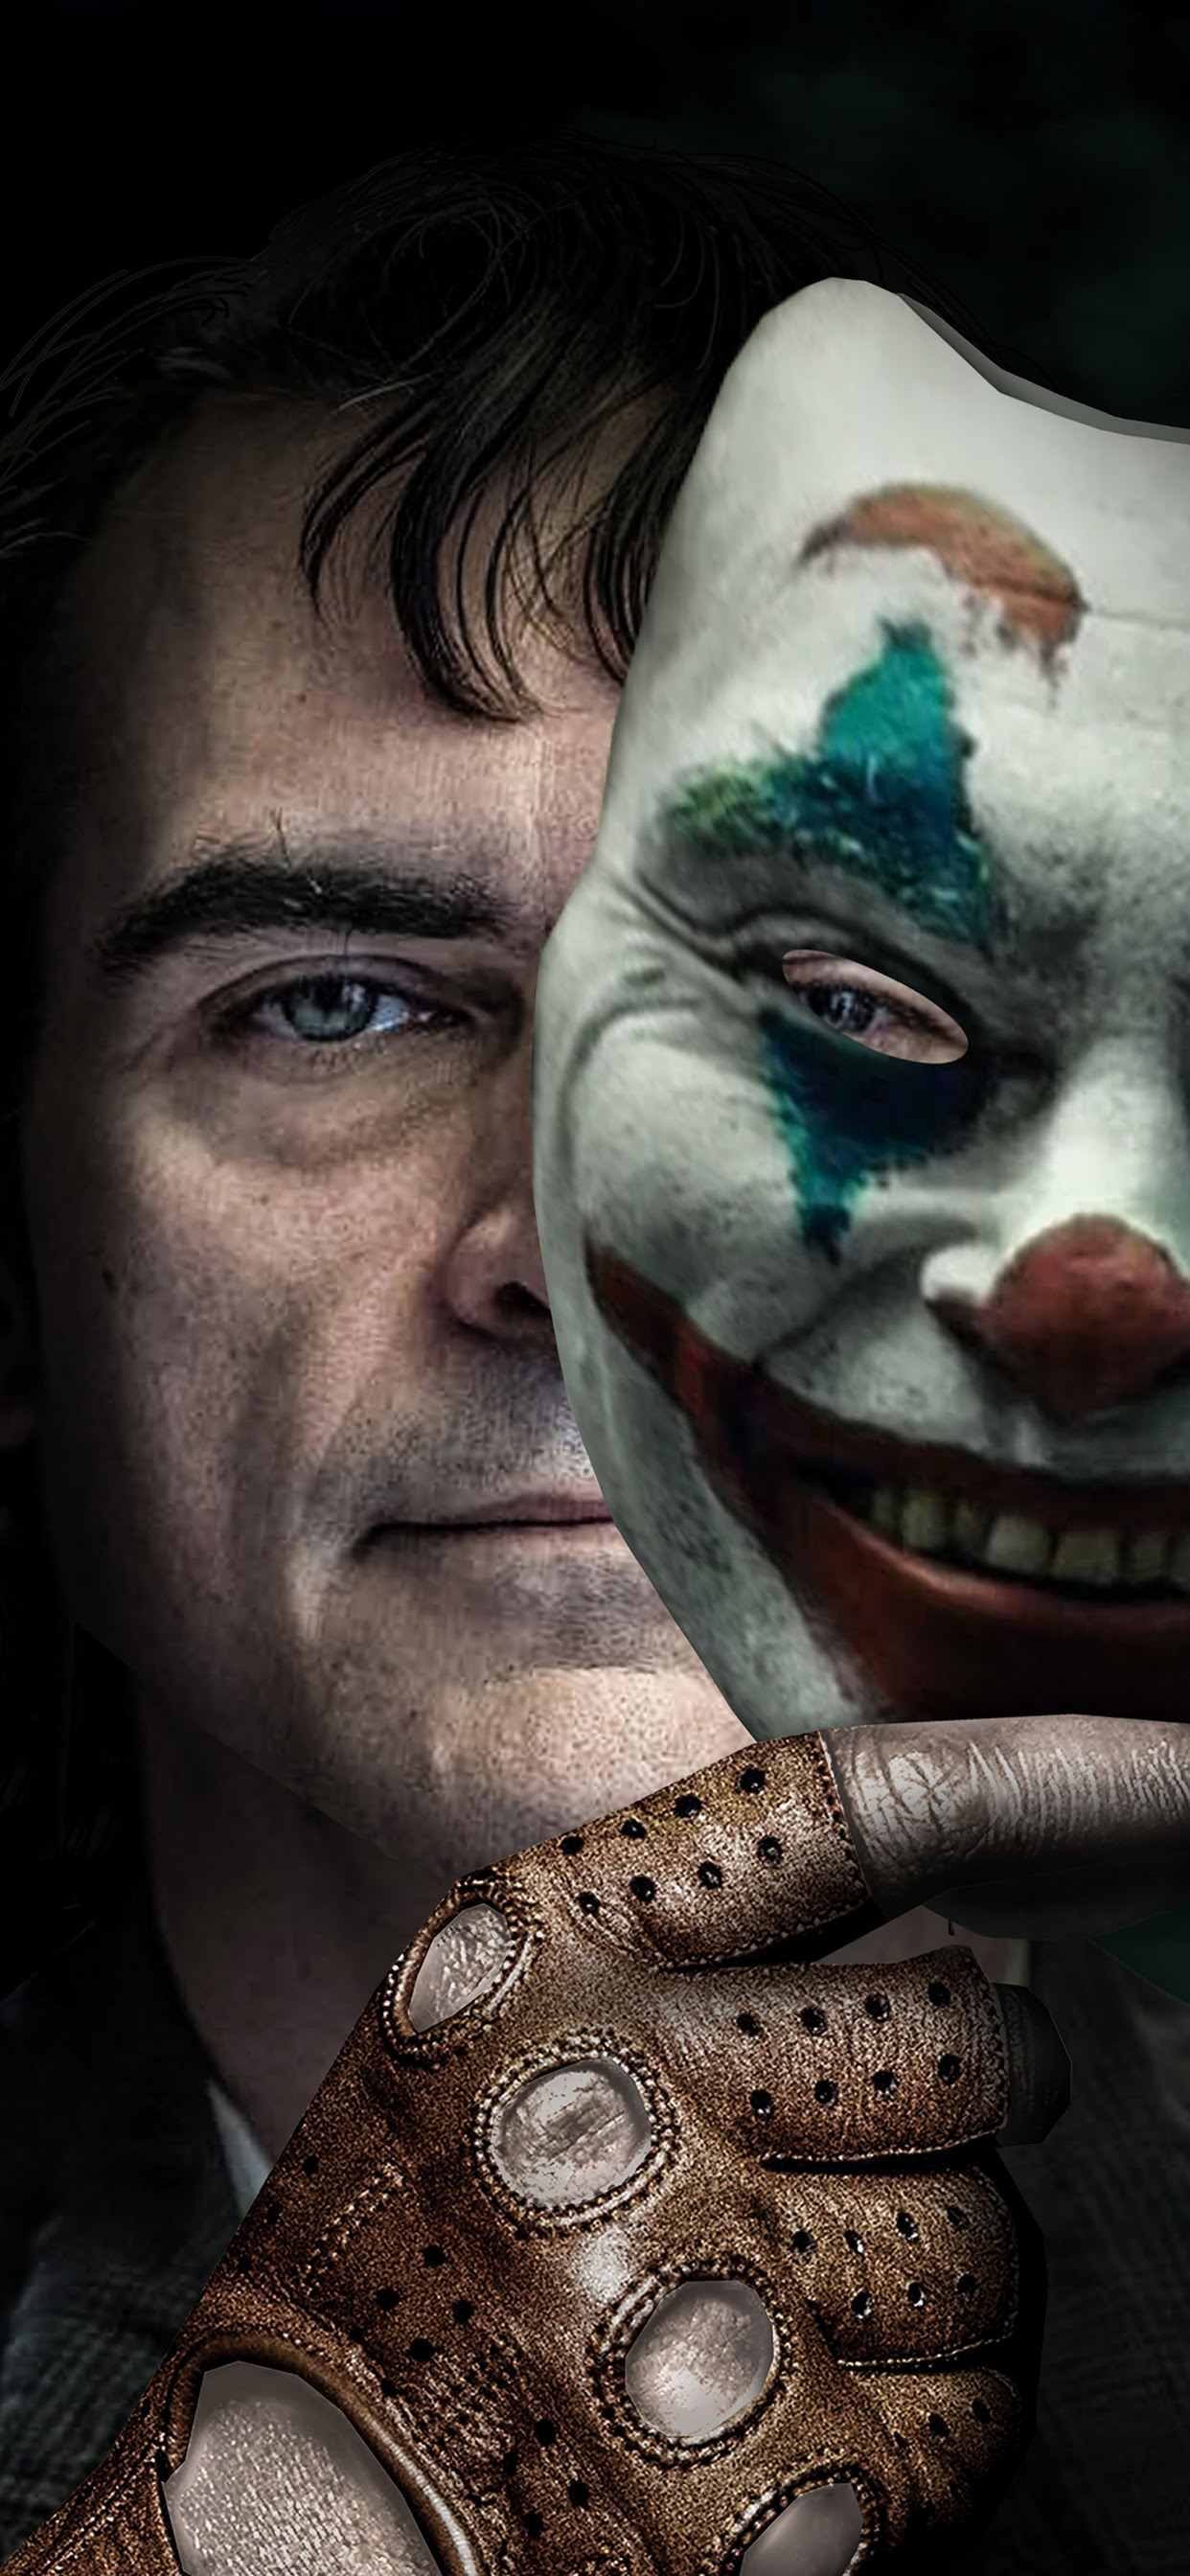 Joker 2019 Joaquin Phoenix 4k Wallpaper 11